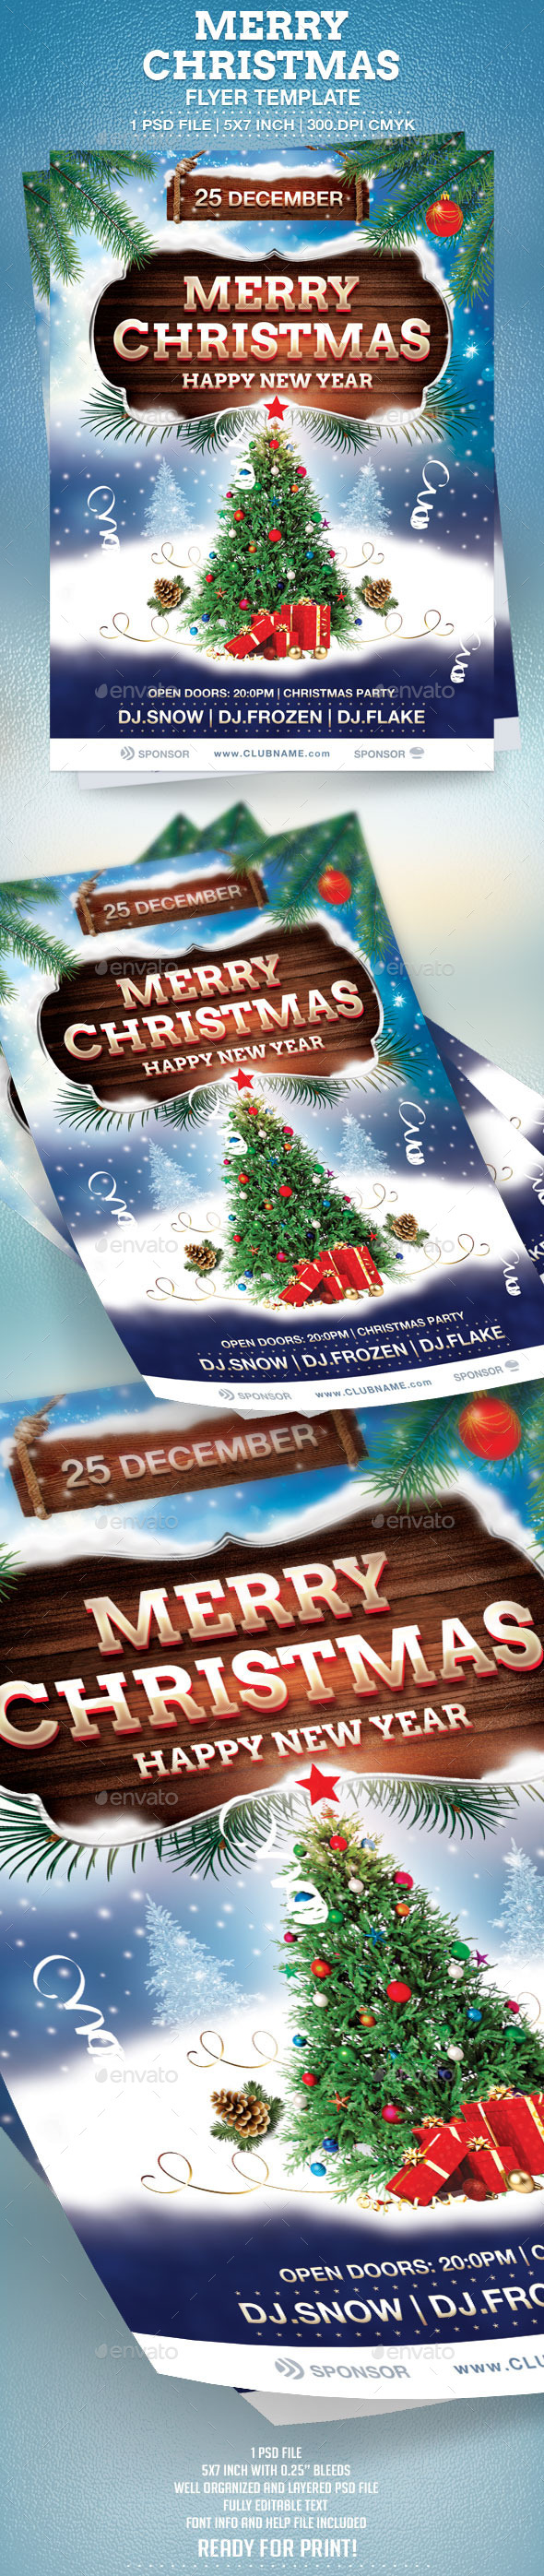 GraphicRiver Merry Christmas Flyer Template 9655703